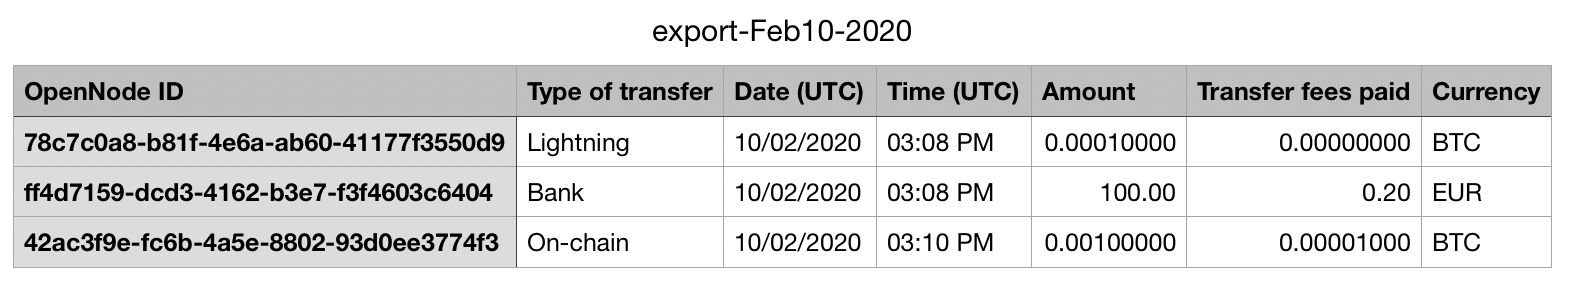 Image of the CSV export from OpenNode